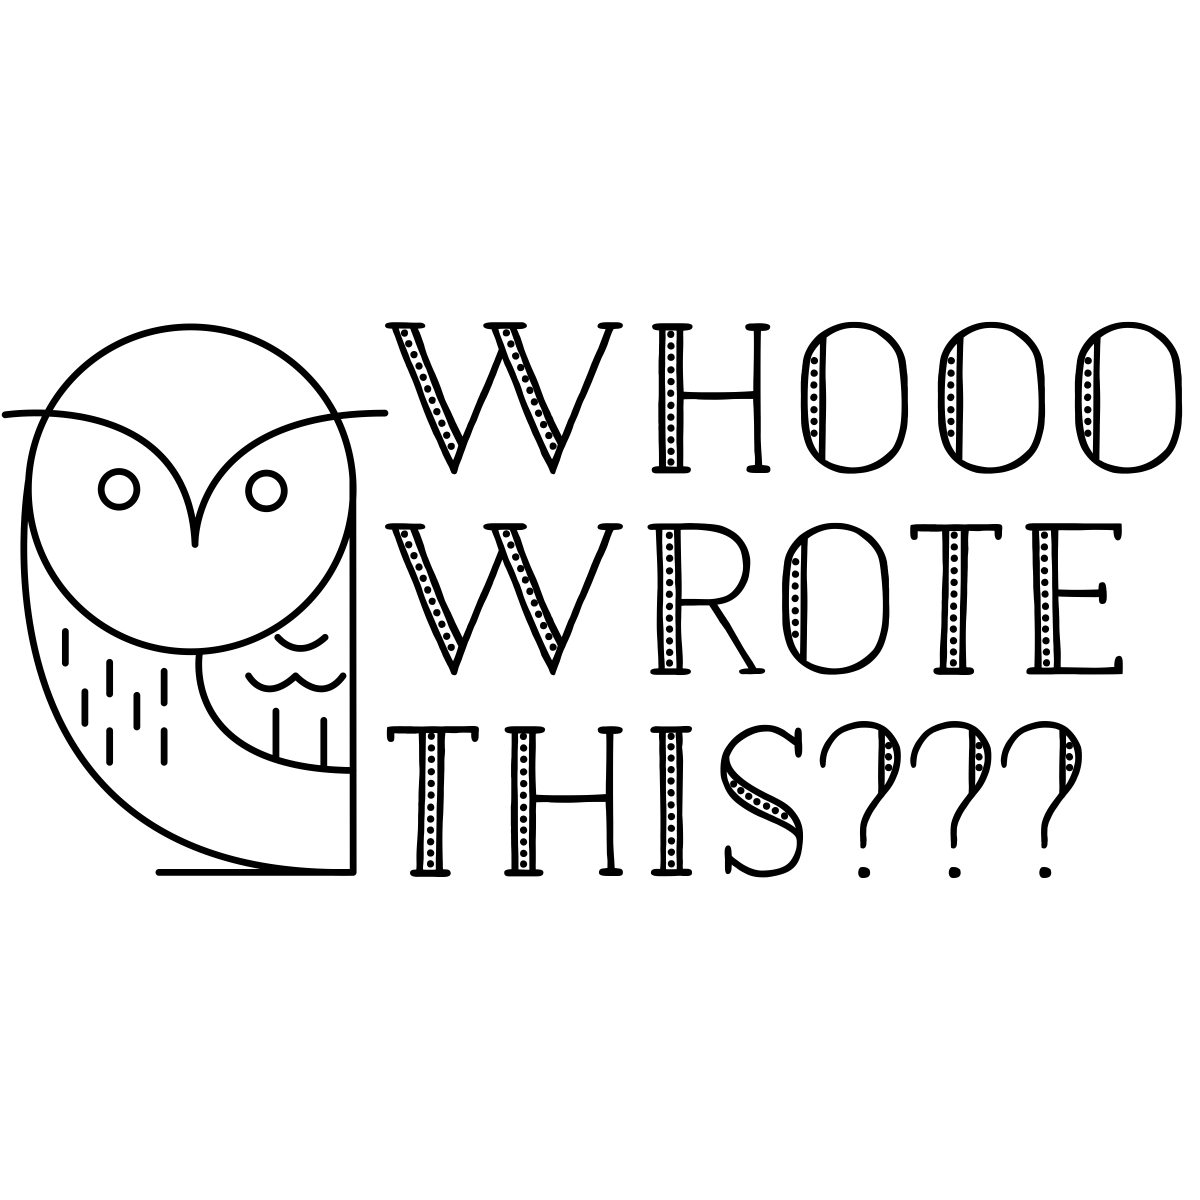 Who Wrote This Owl Teacher Stamp